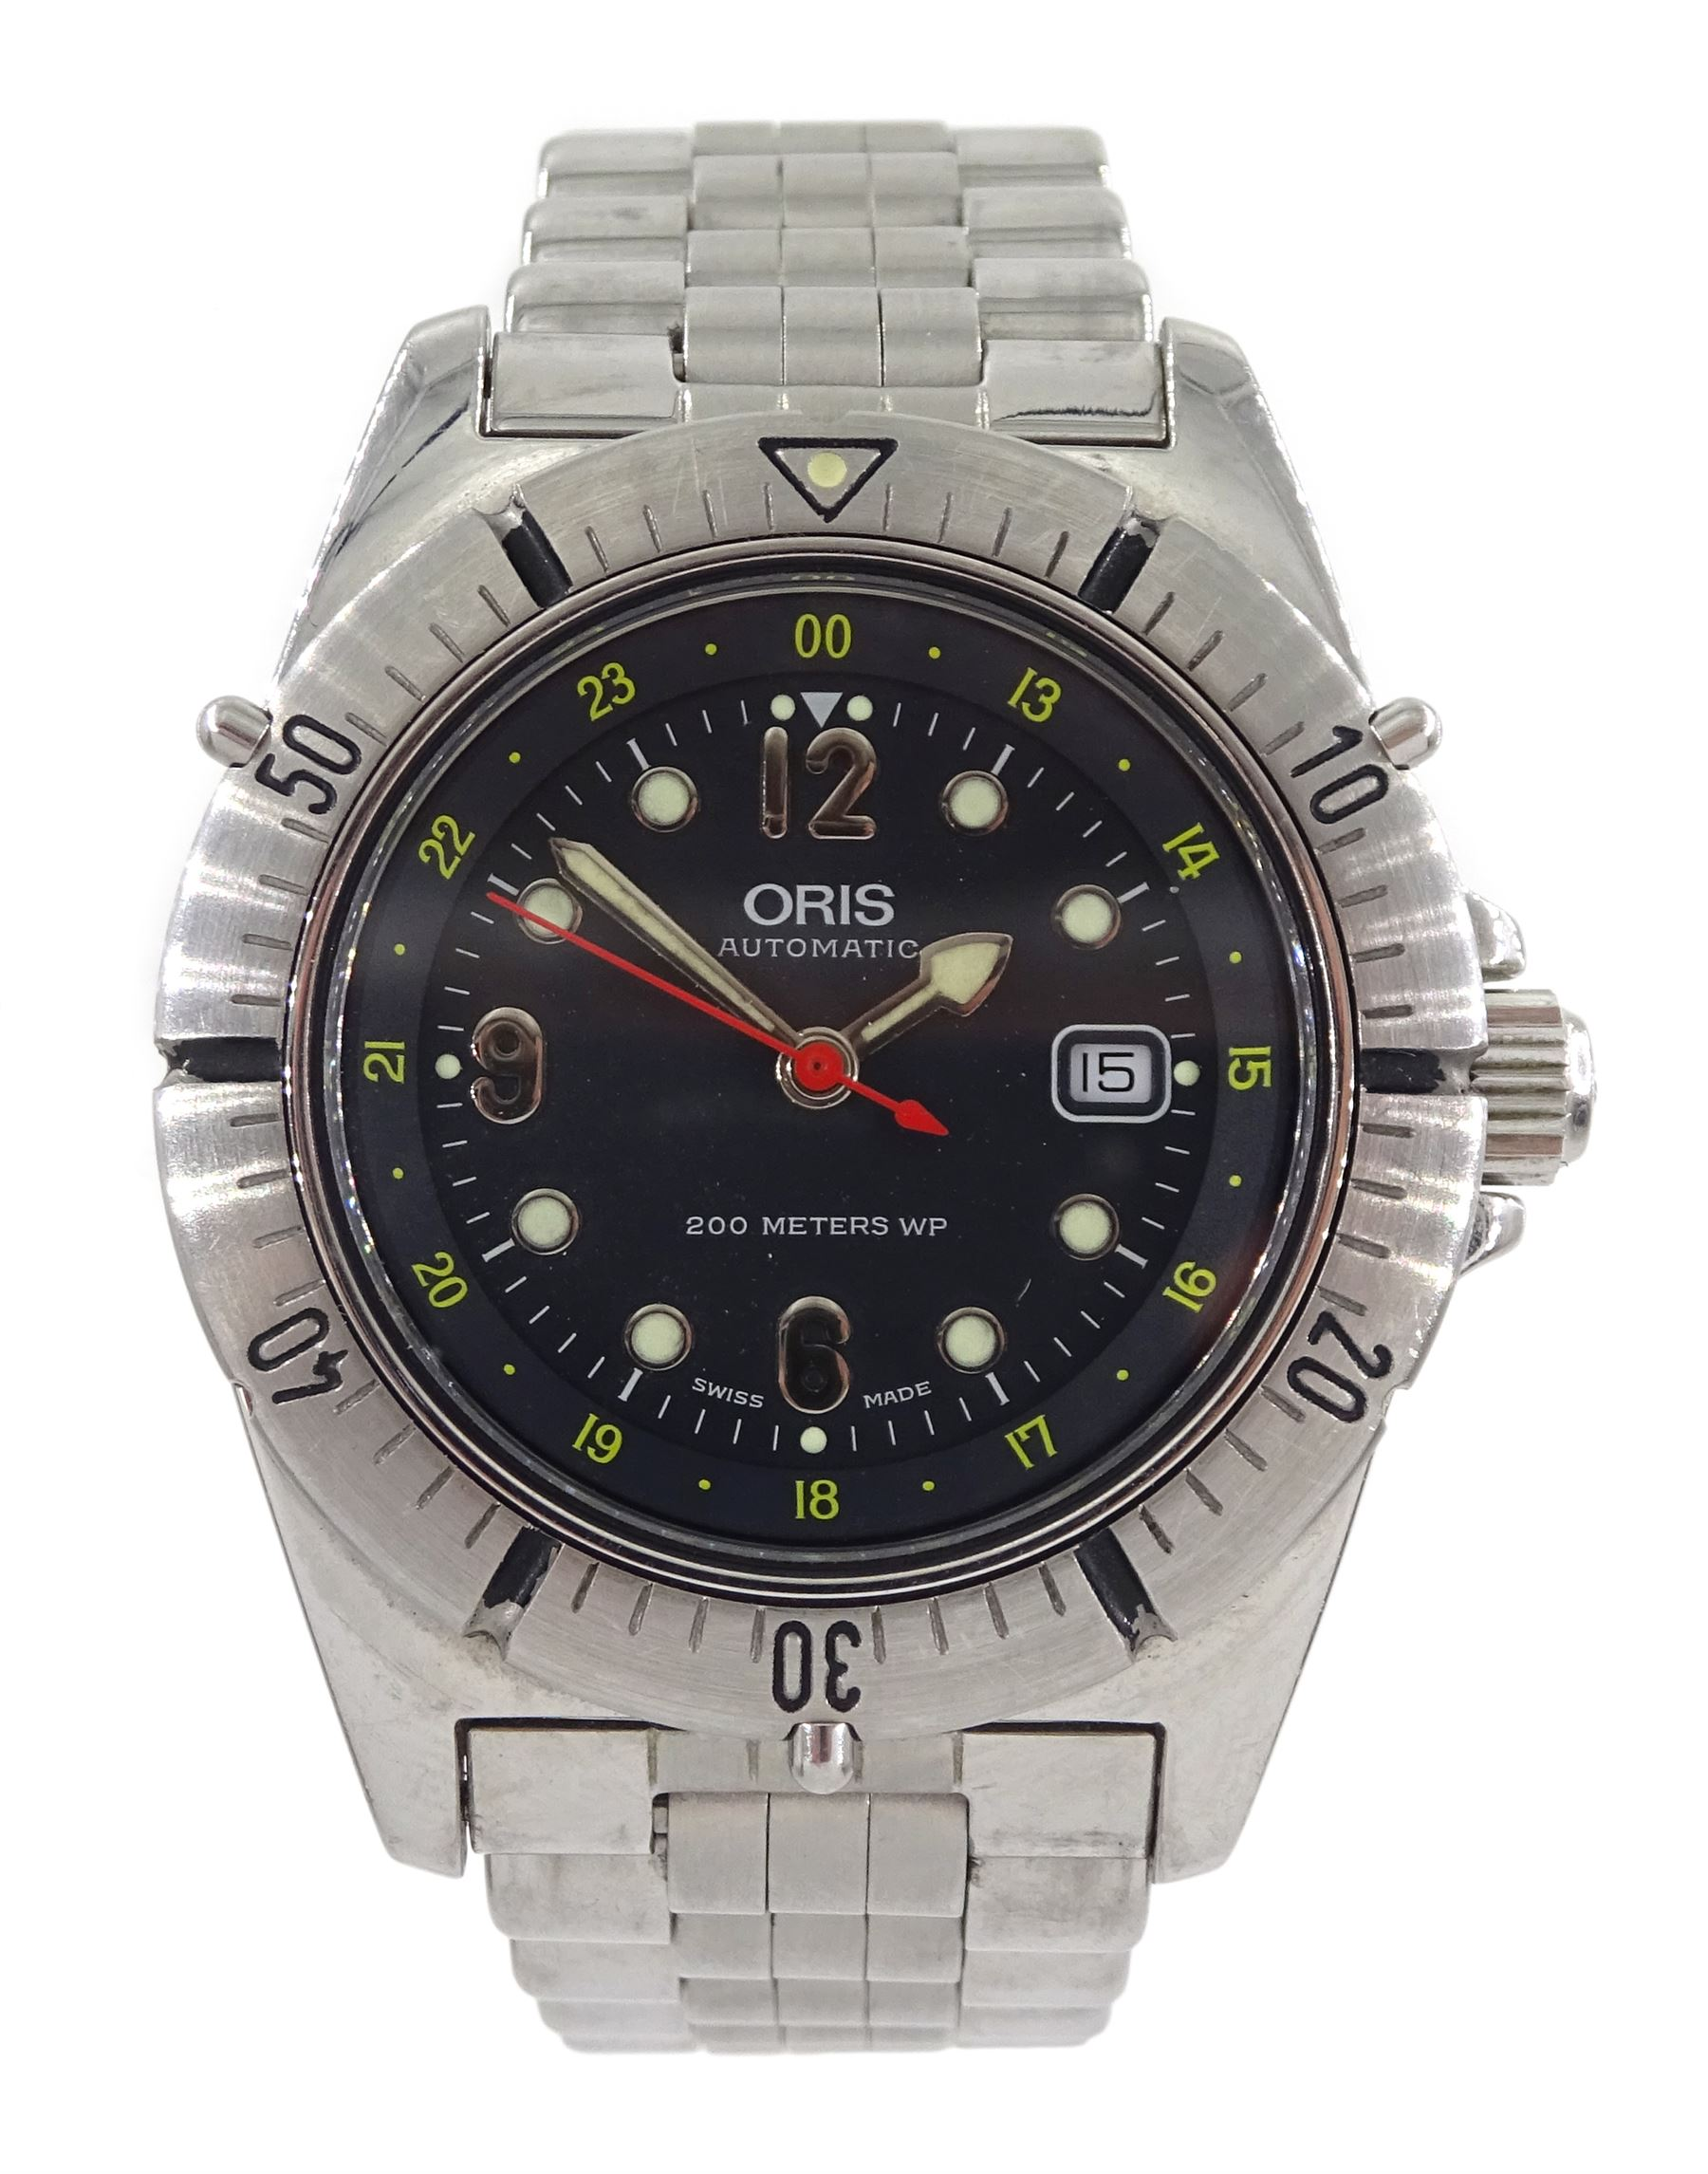 Oris automatic stainless steel divers wristwatch